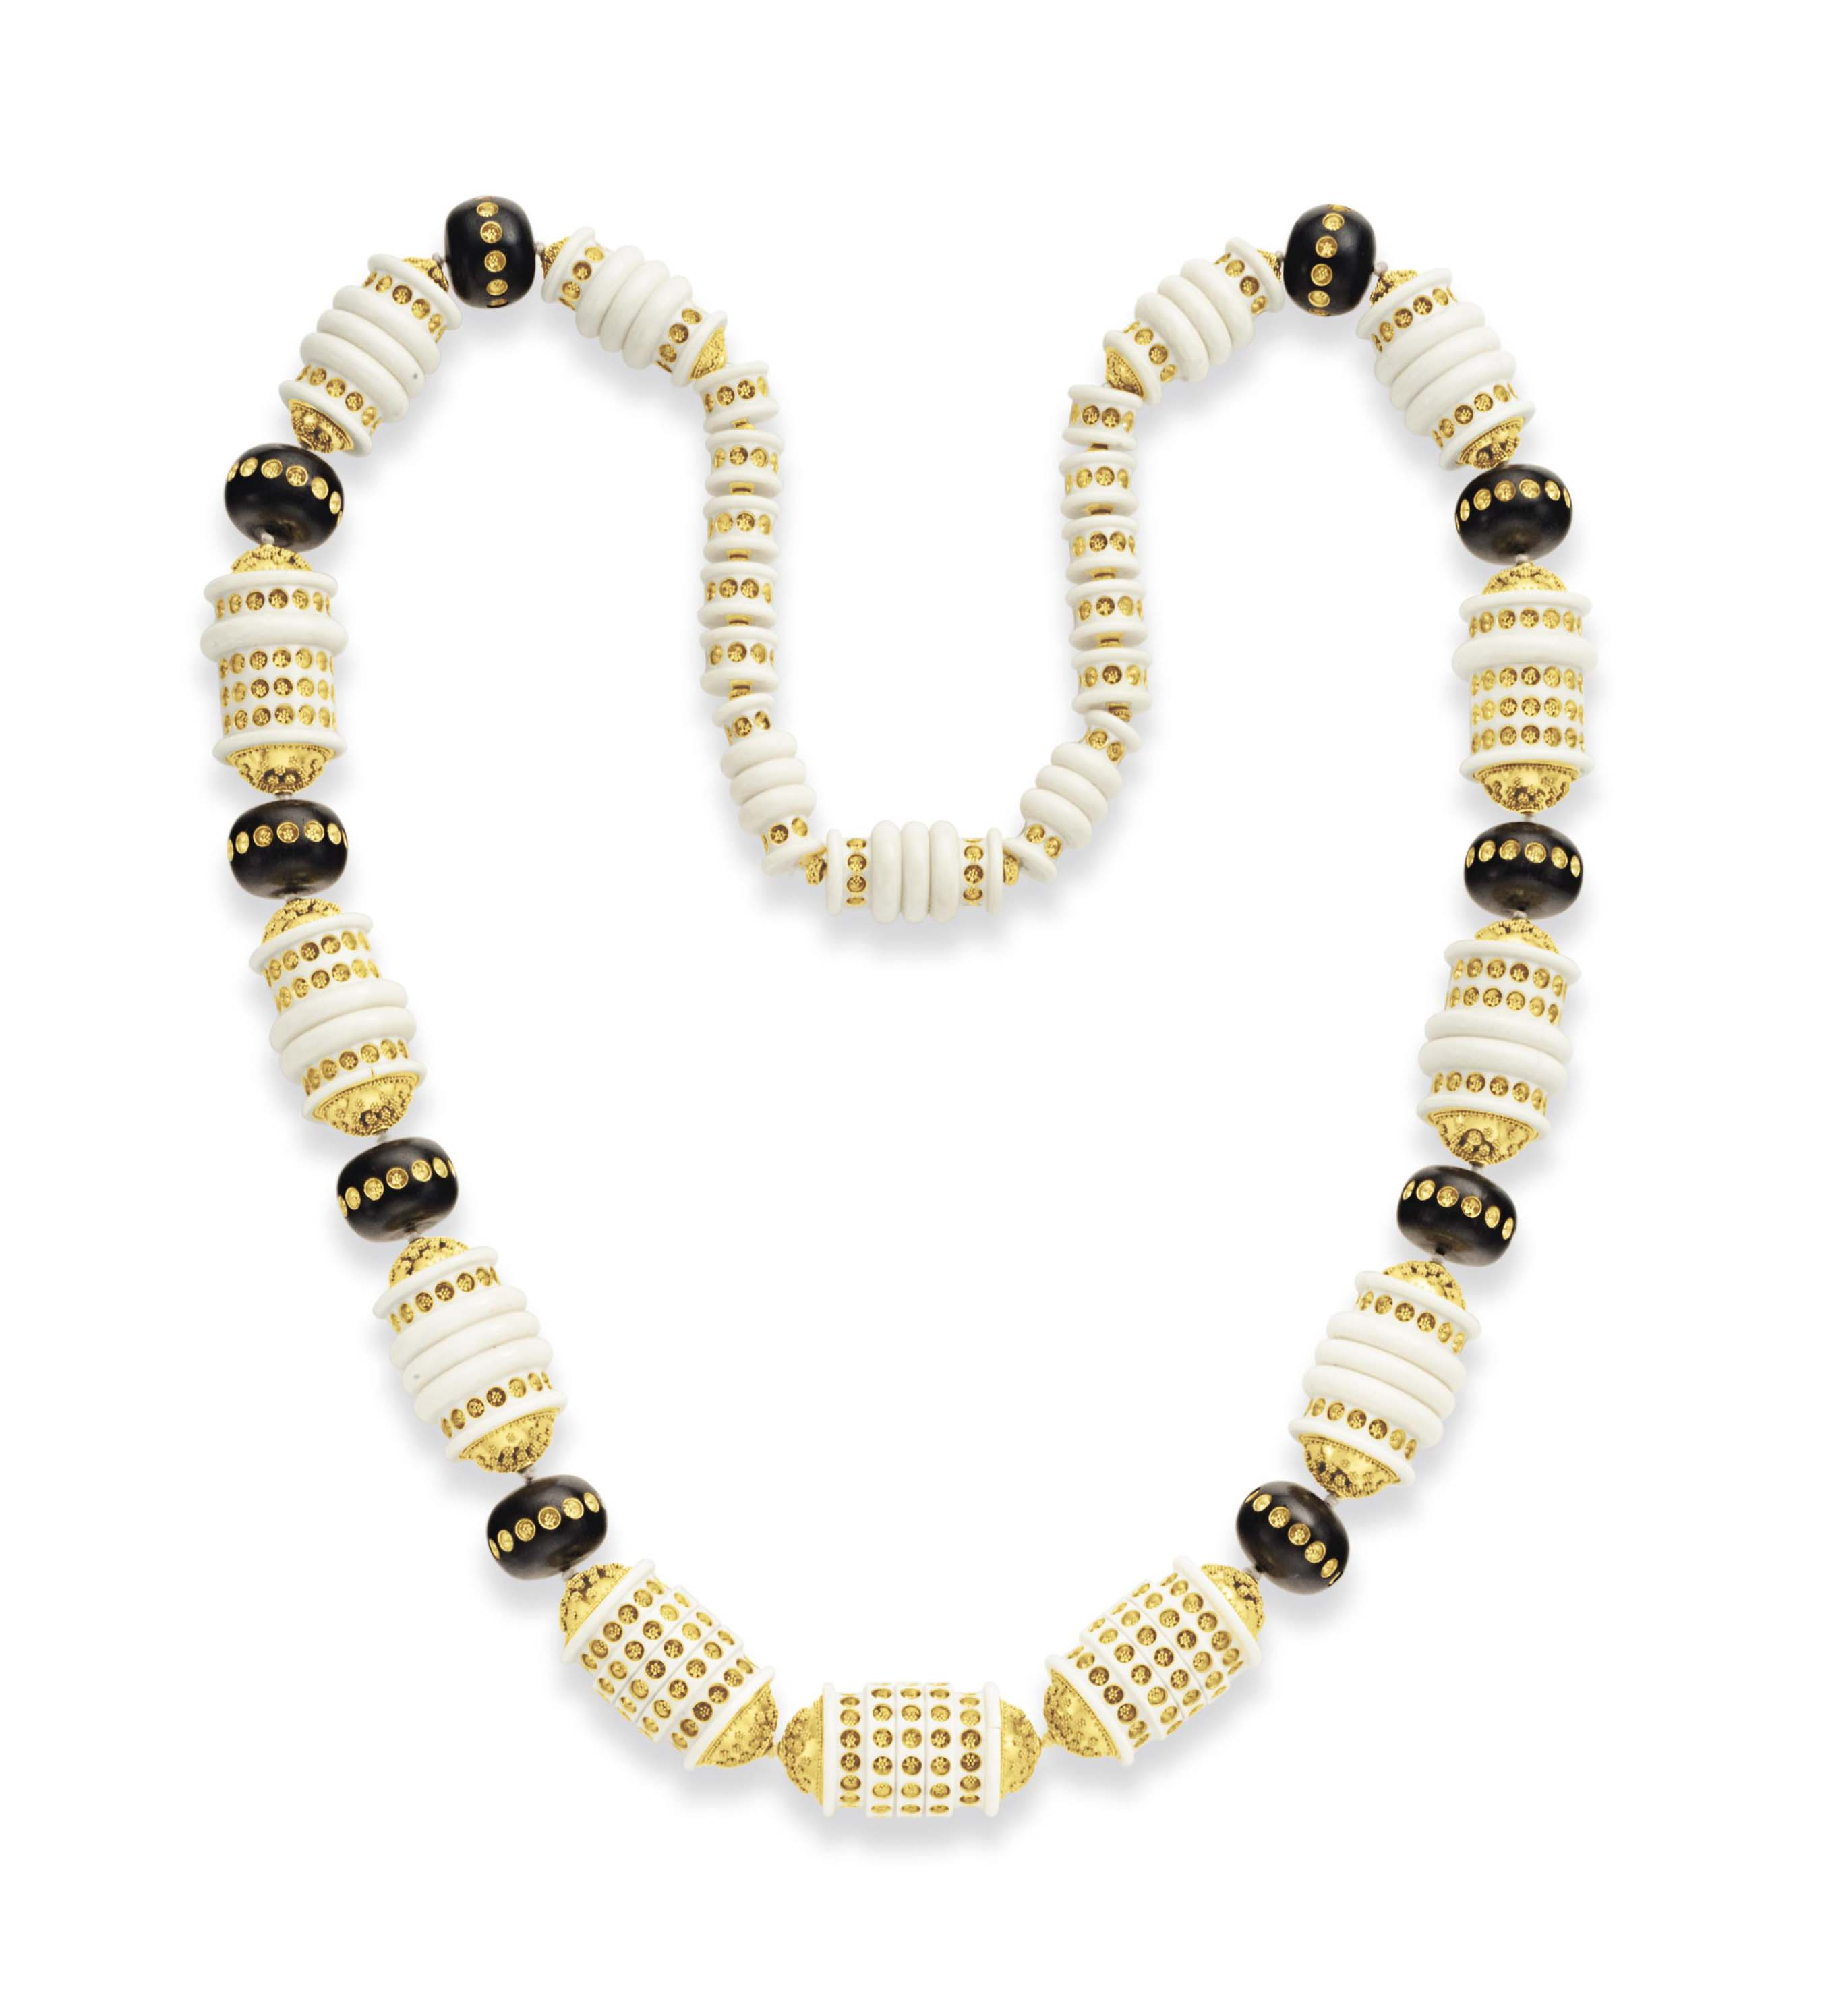 ~AN IVORY AND WOOD BEAD NECKLACE, BY DANIEL BRUSH